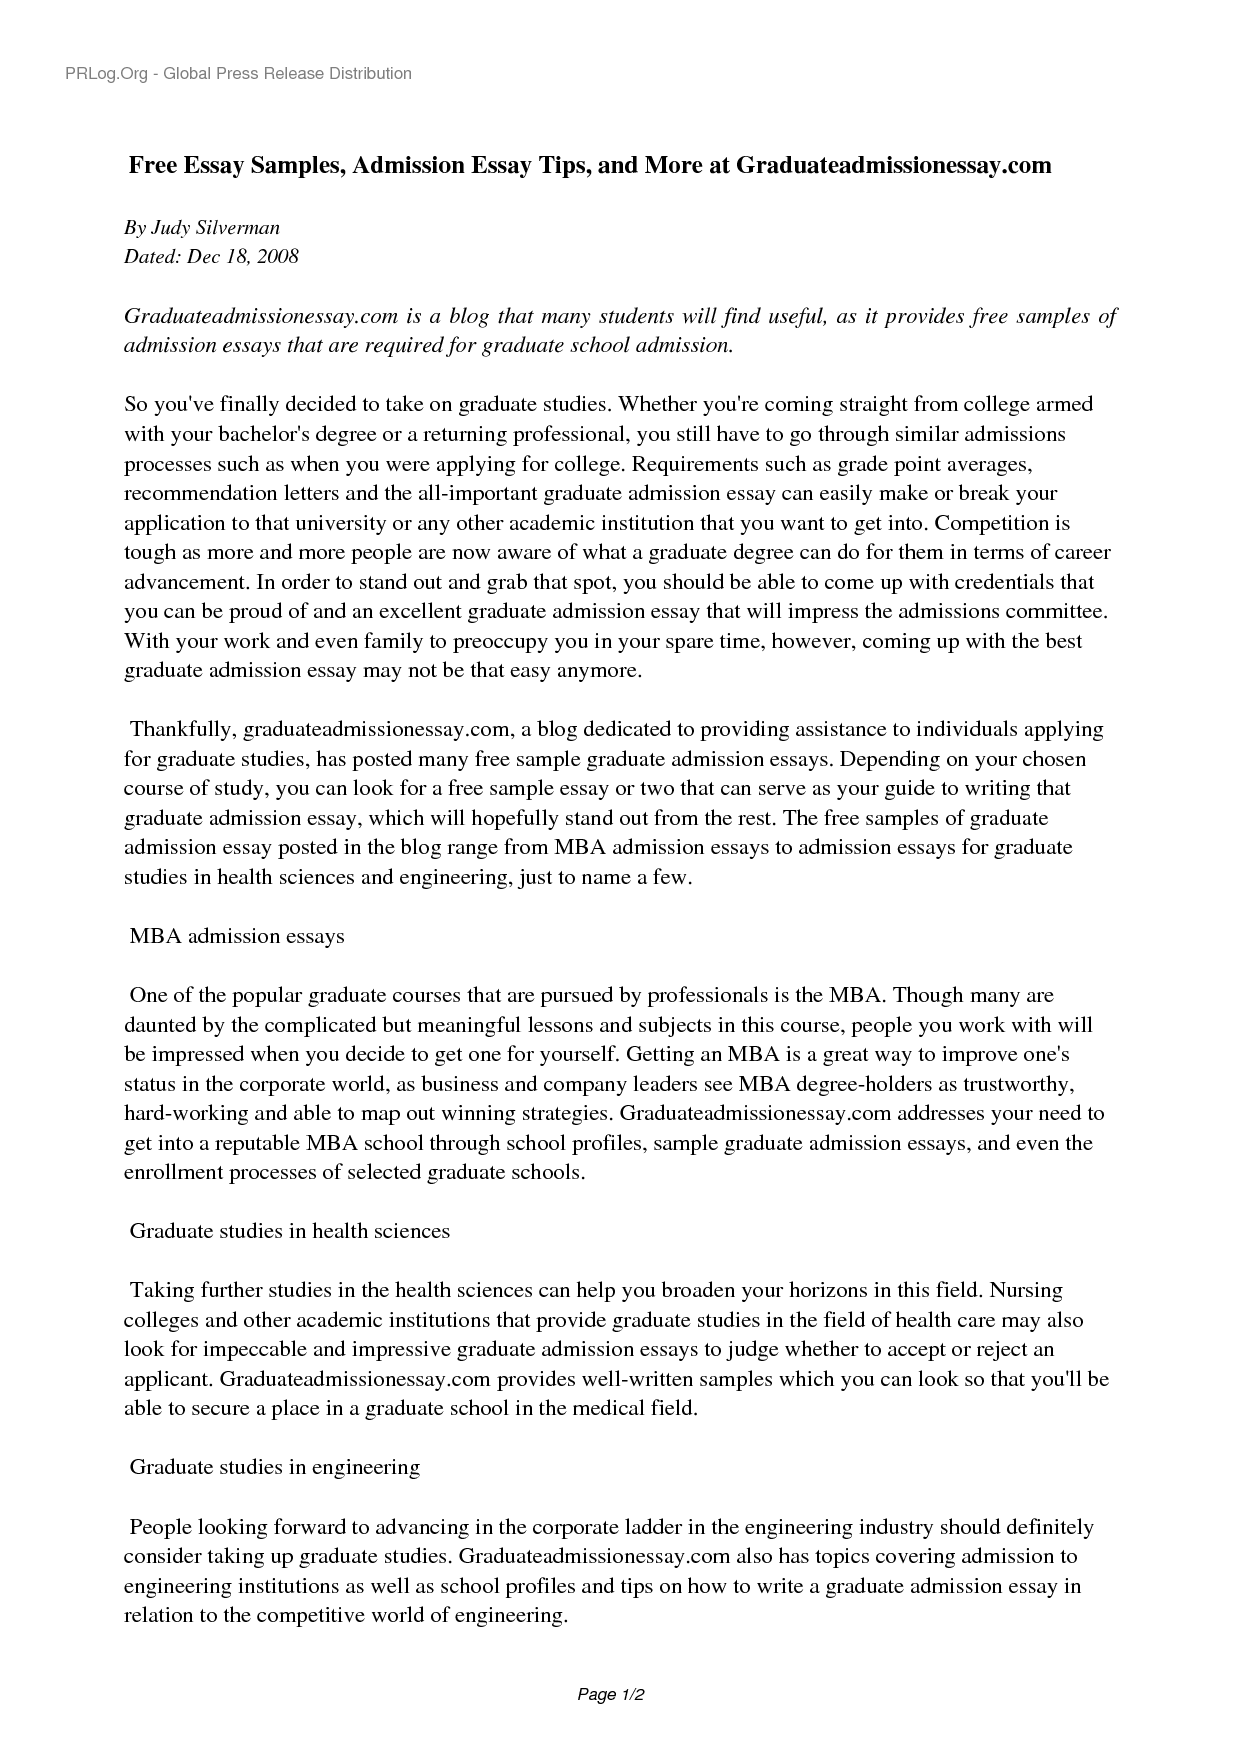 graduate application essay 4 sample graduate school essays #1 --try and have a paper that you could submit for publication before you apply to graduate school.